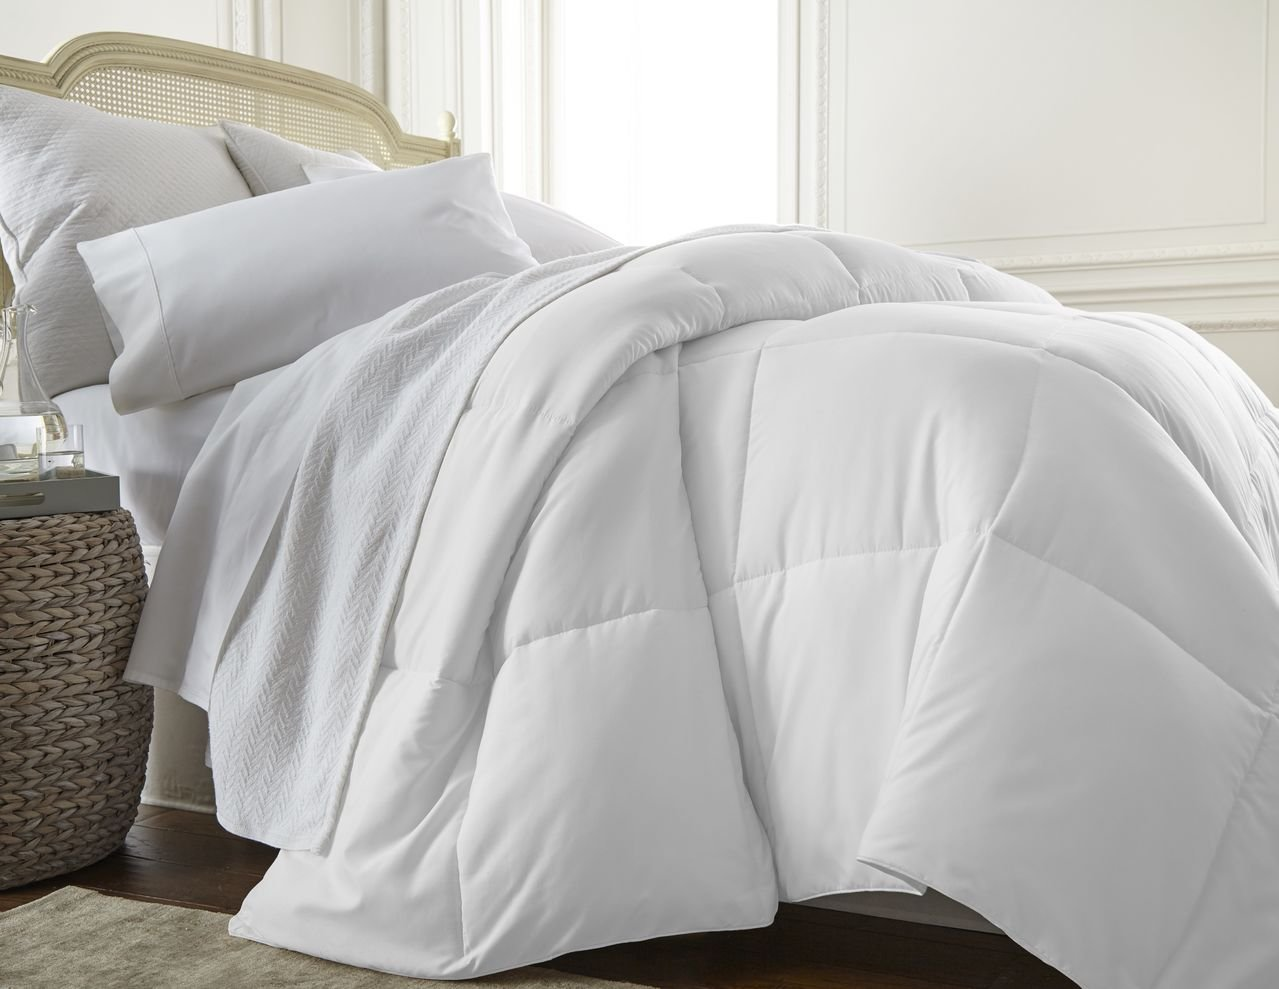 amazoncom ienjoy home collection ultra plush premium down comforter queenfull white home u0026 kitchen